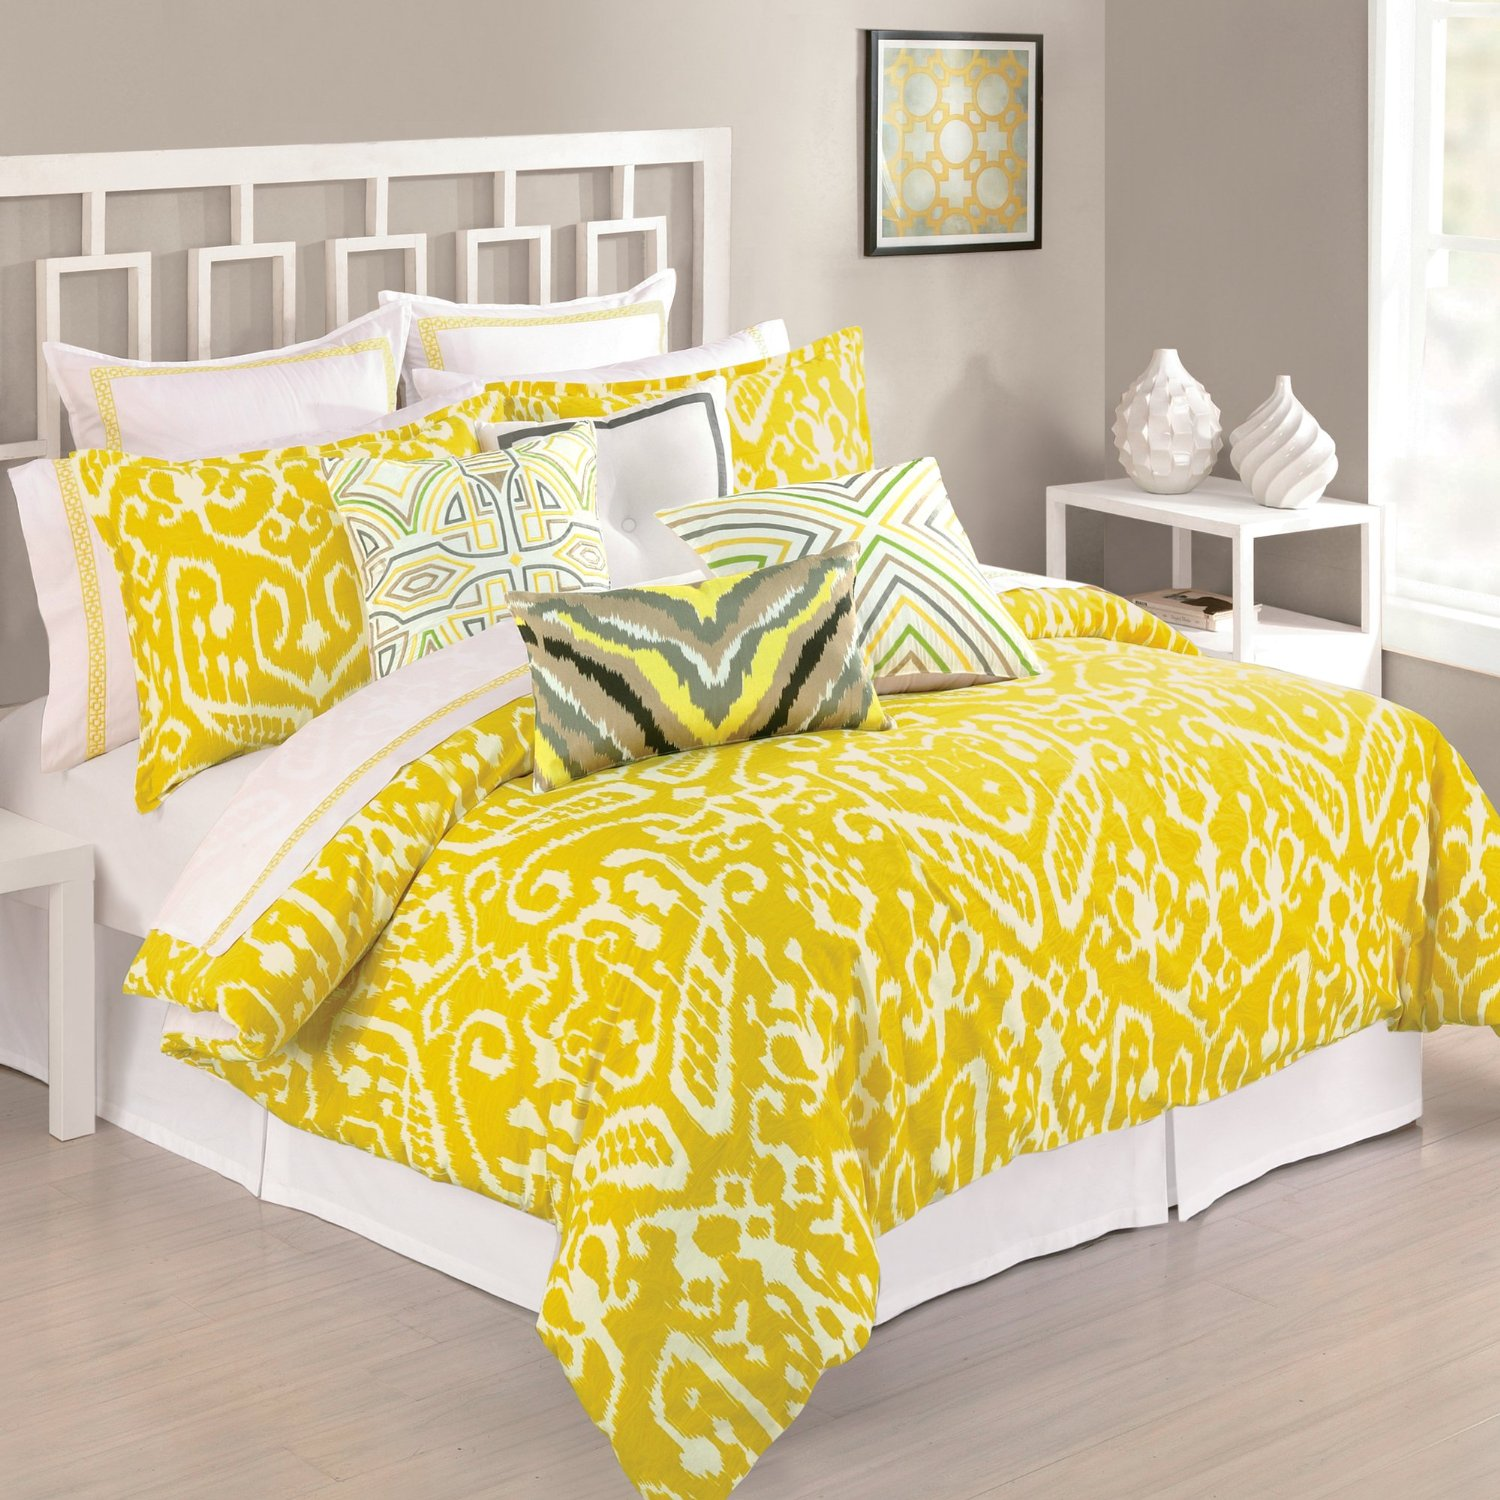 Mustard Yellow Comforters And Bedding Sets